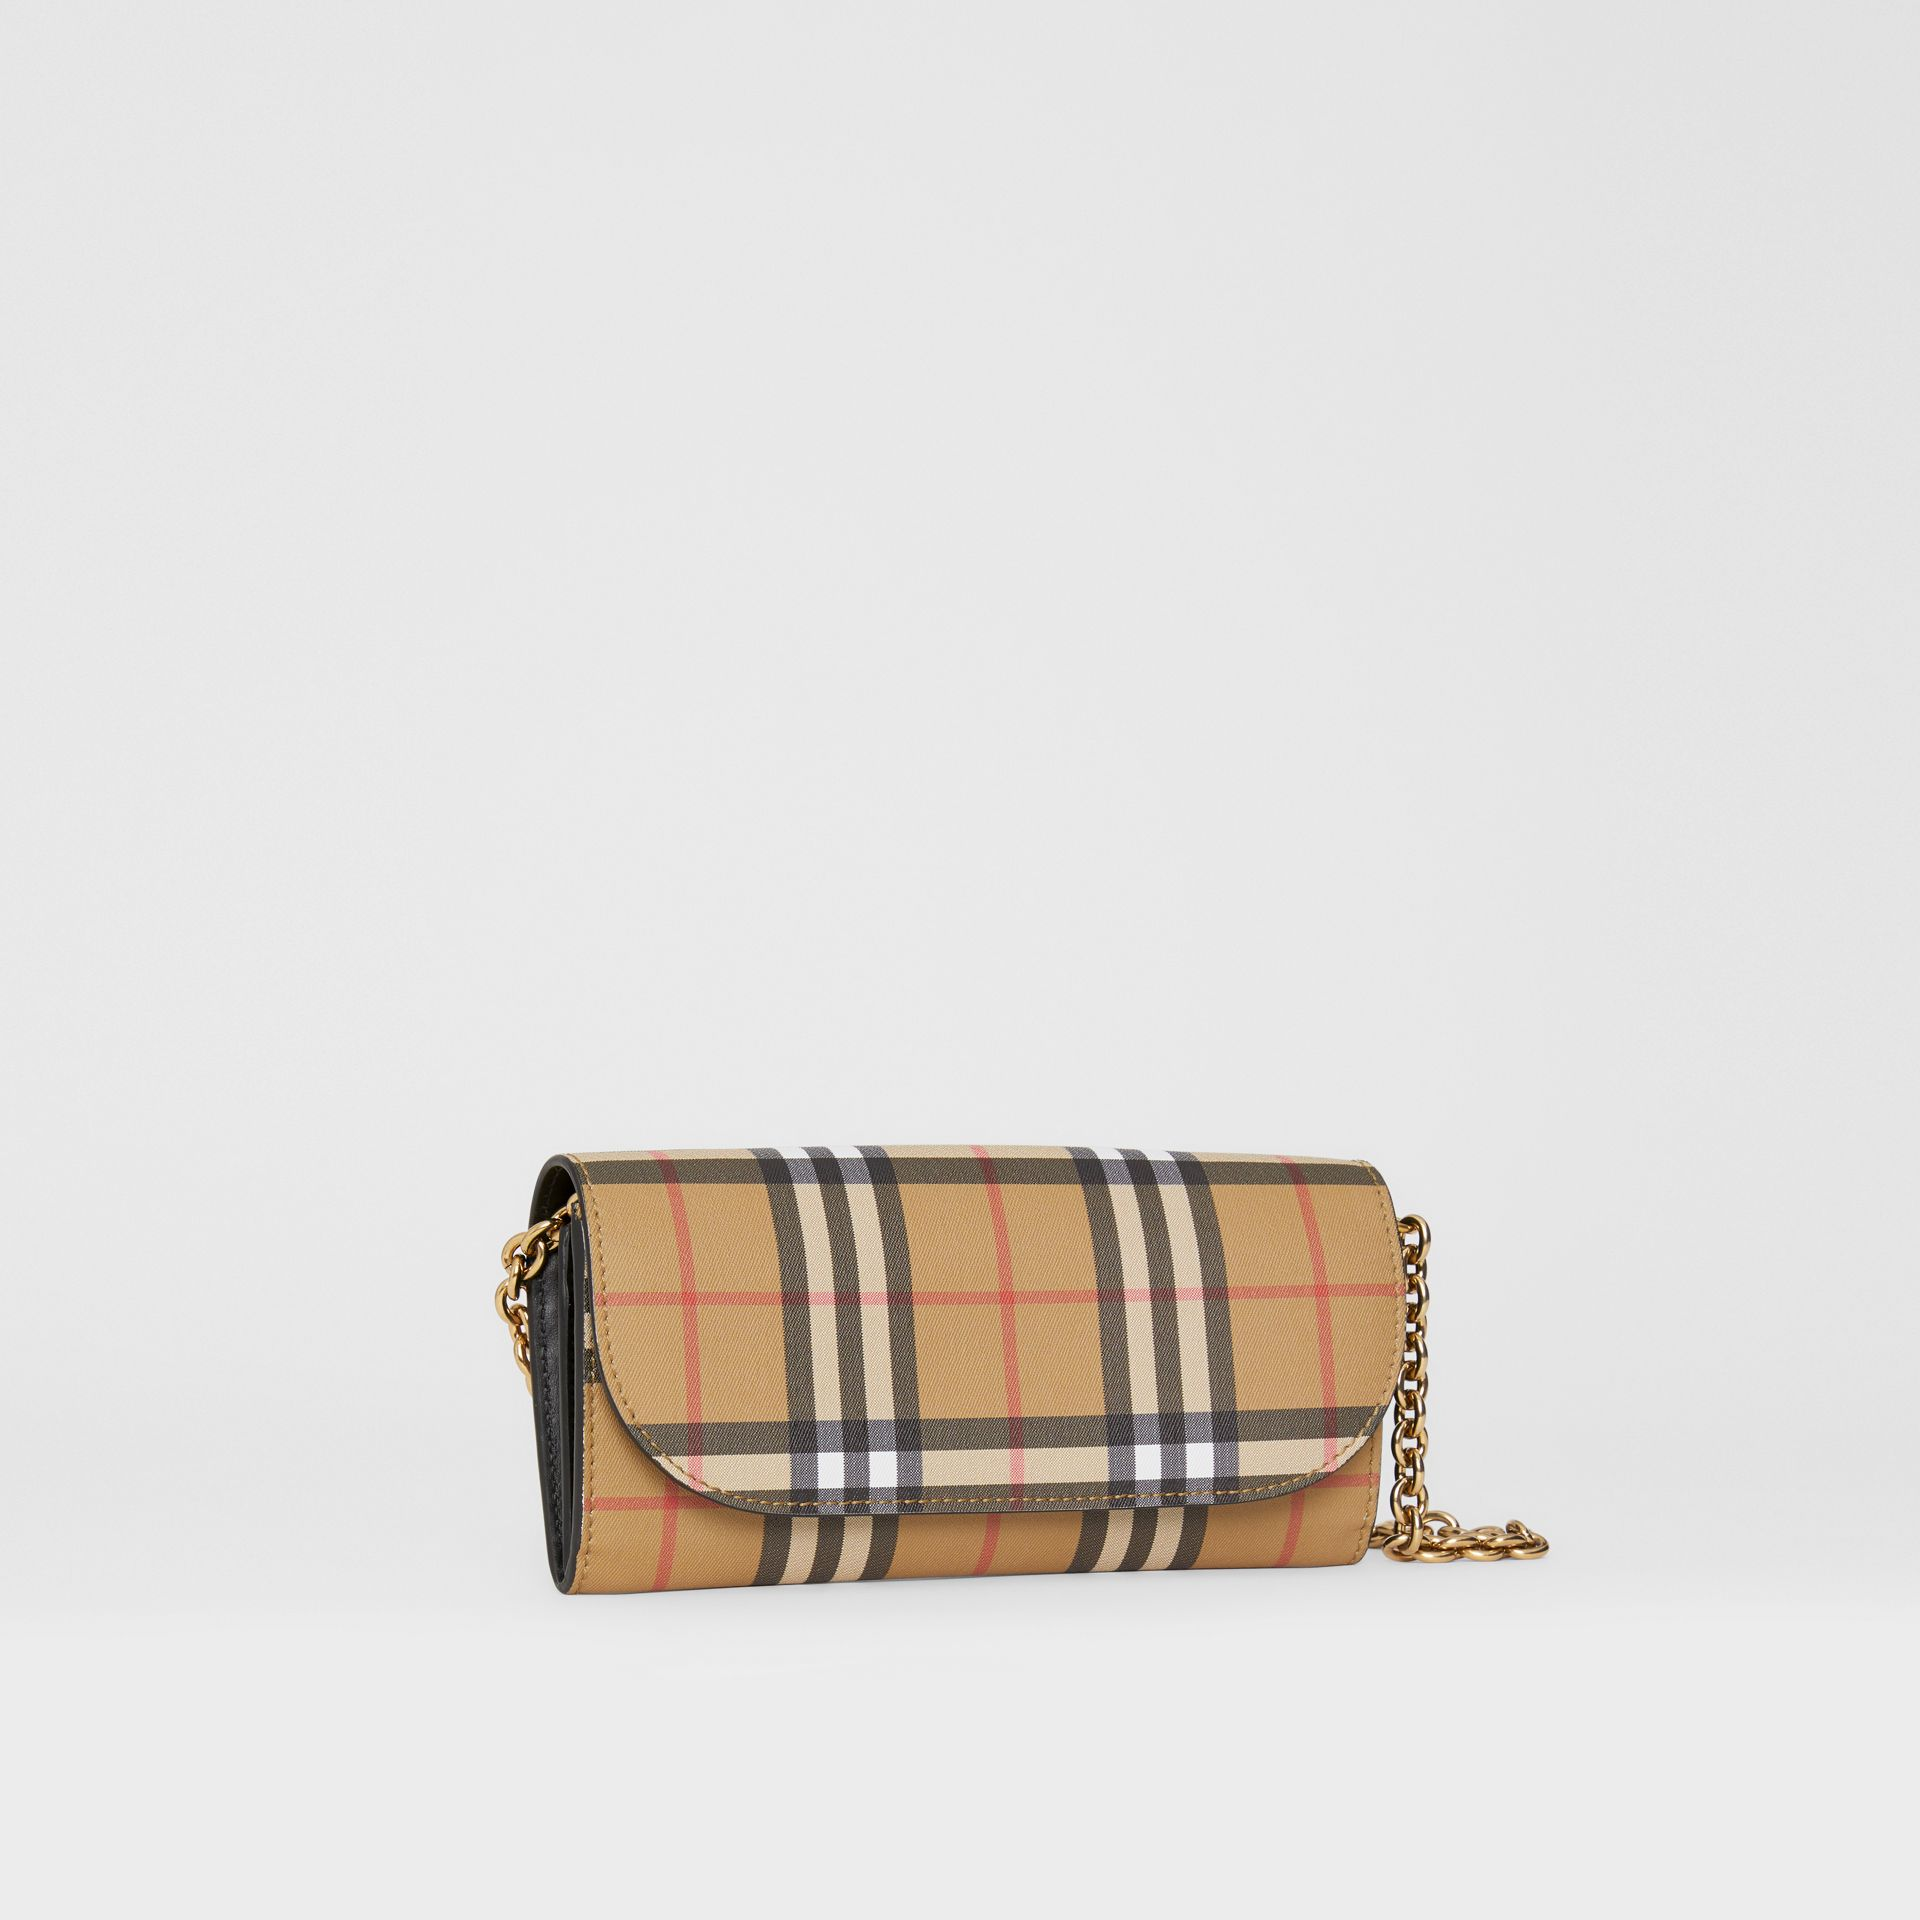 Vintage Check and Leather Wallet with Chain in Black - Women | Burberry Hong Kong - gallery image 6